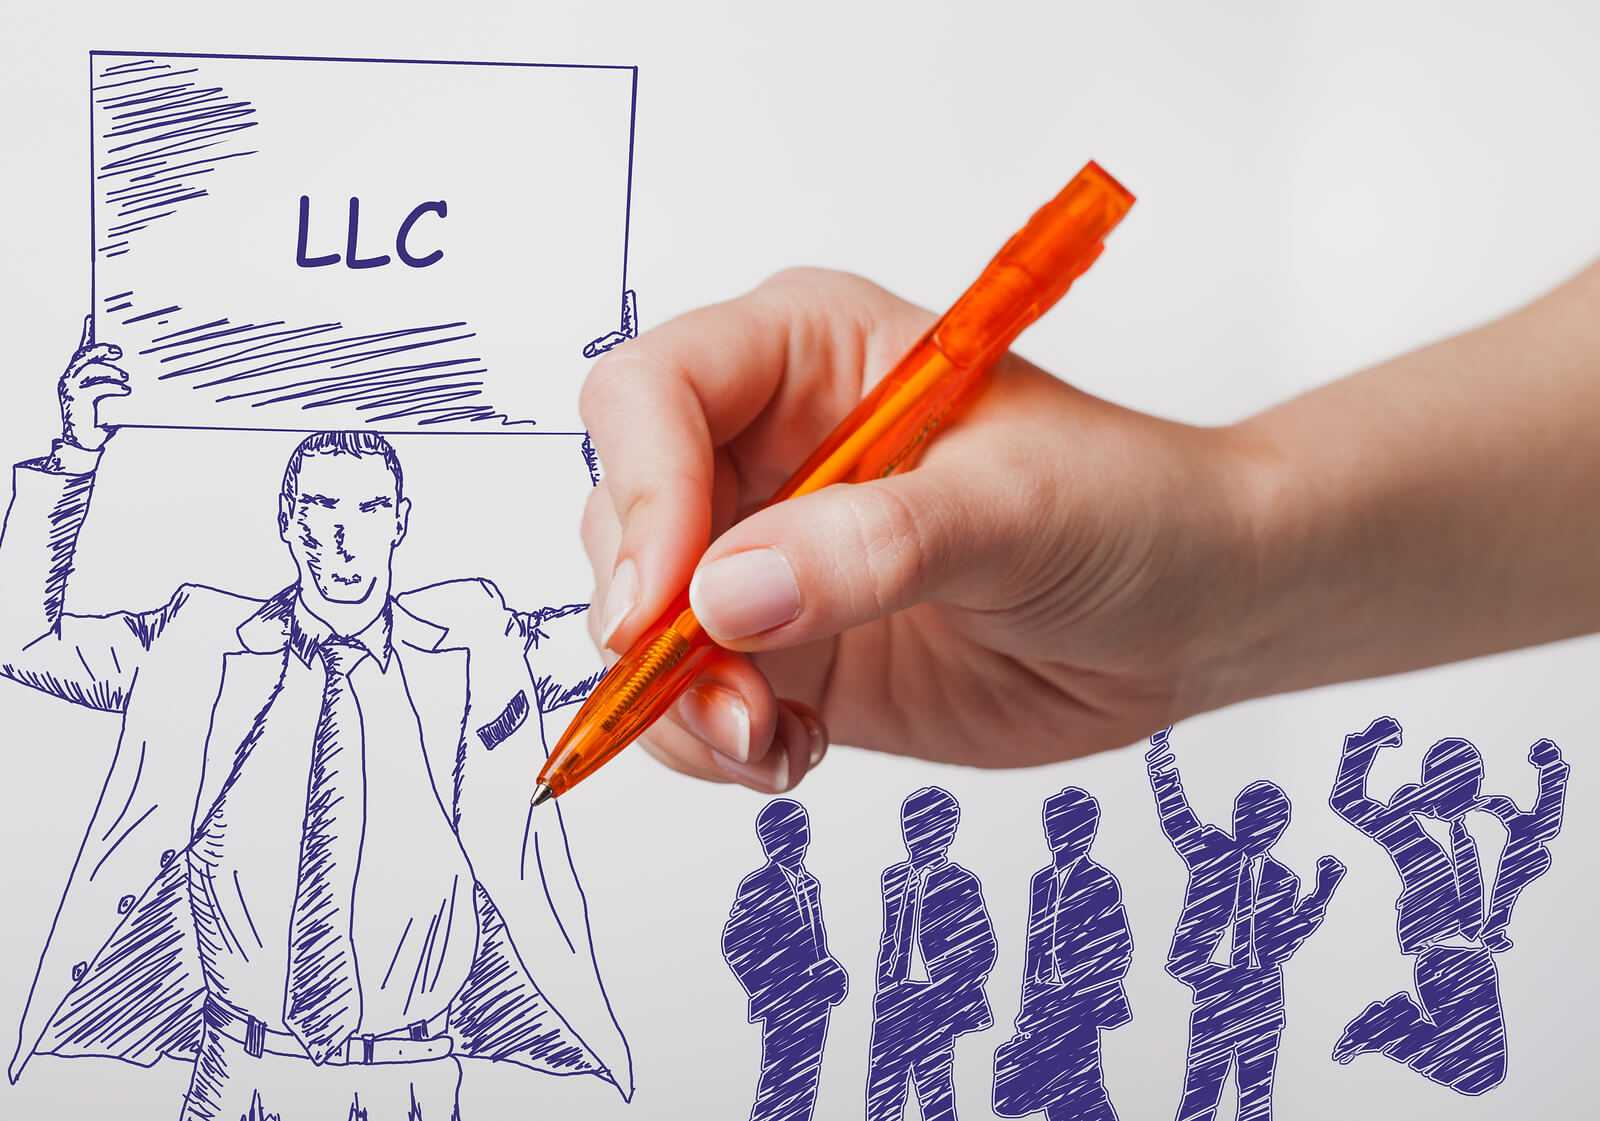 Should You Form an LLC? Weighing the Pros and Cons